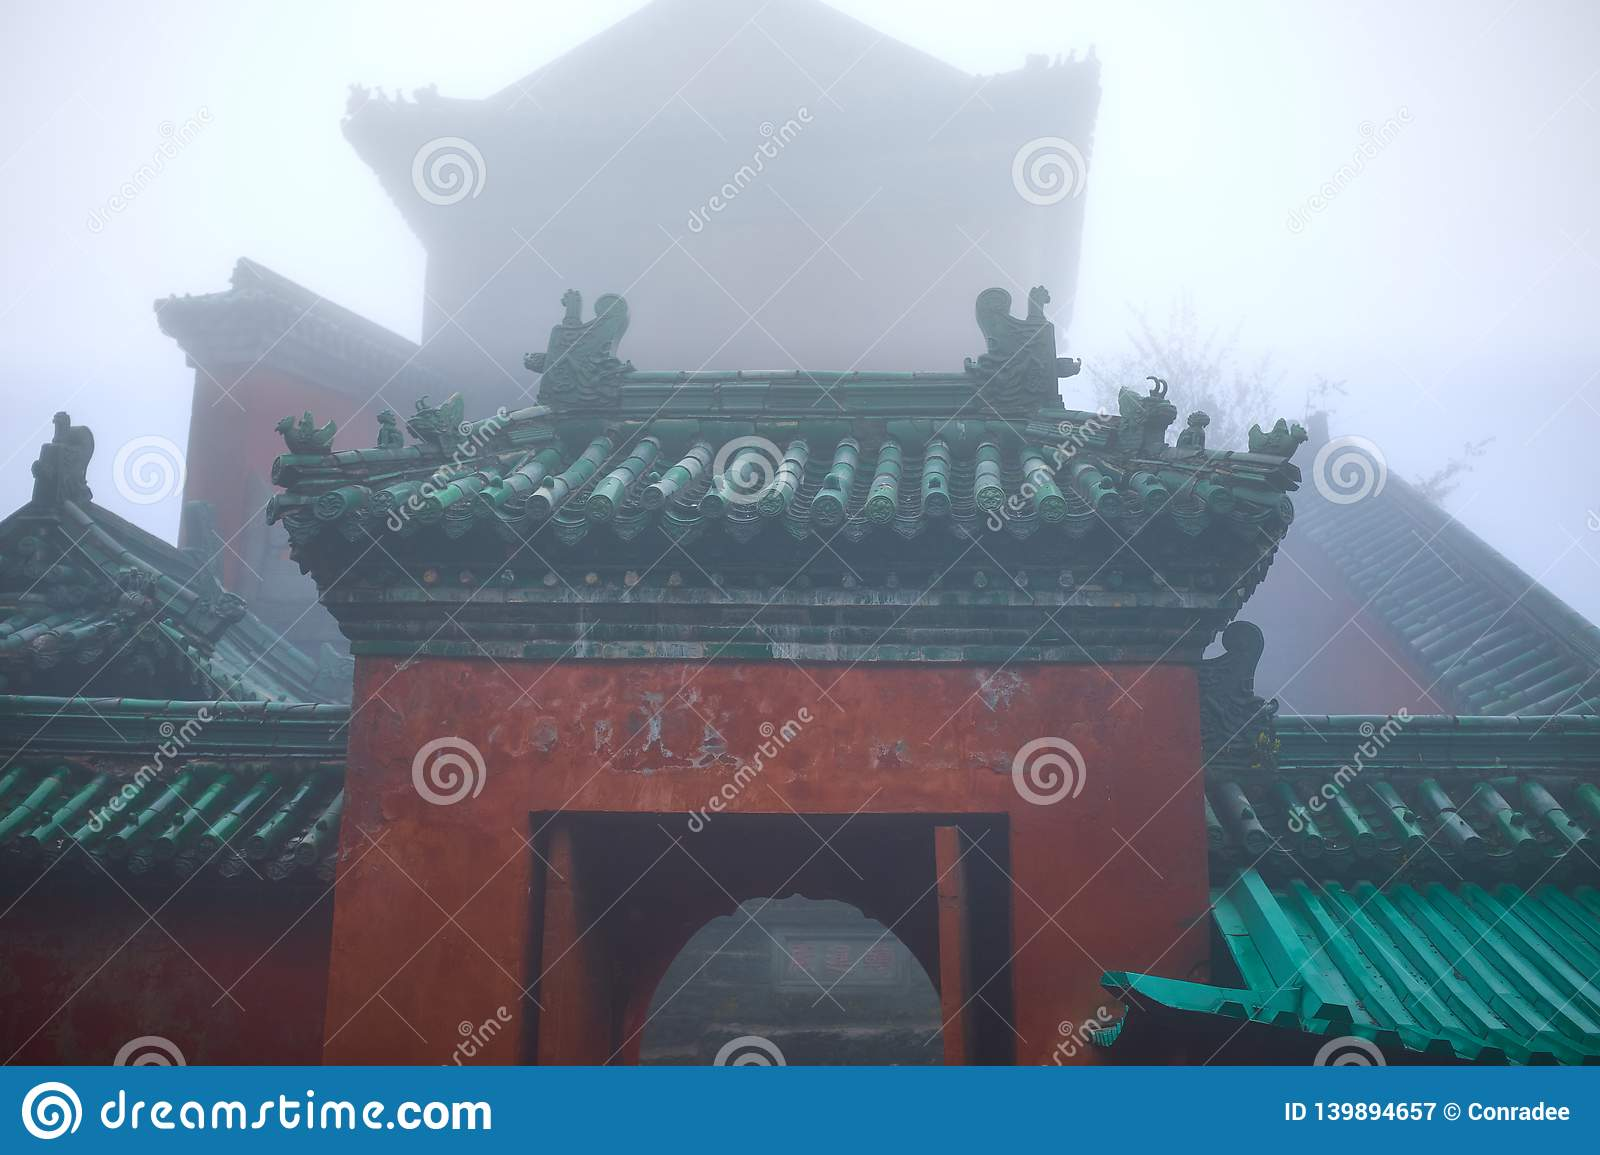 Entrance to the old kungfu Temple on a wall of mountain